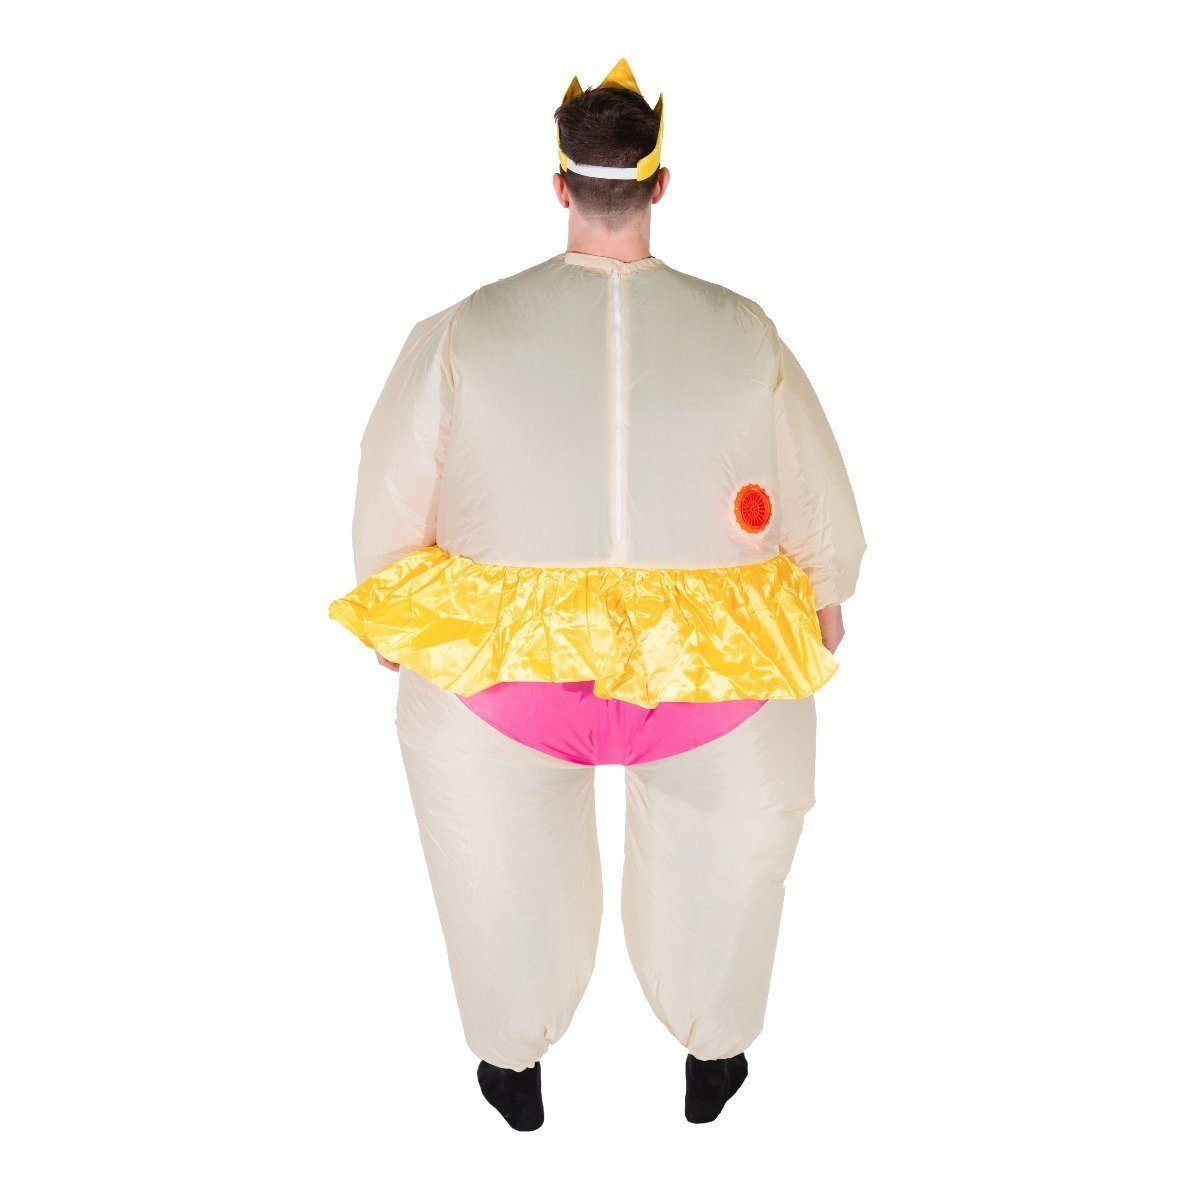 Fancy Dress - Inflatable Ballerina Costume